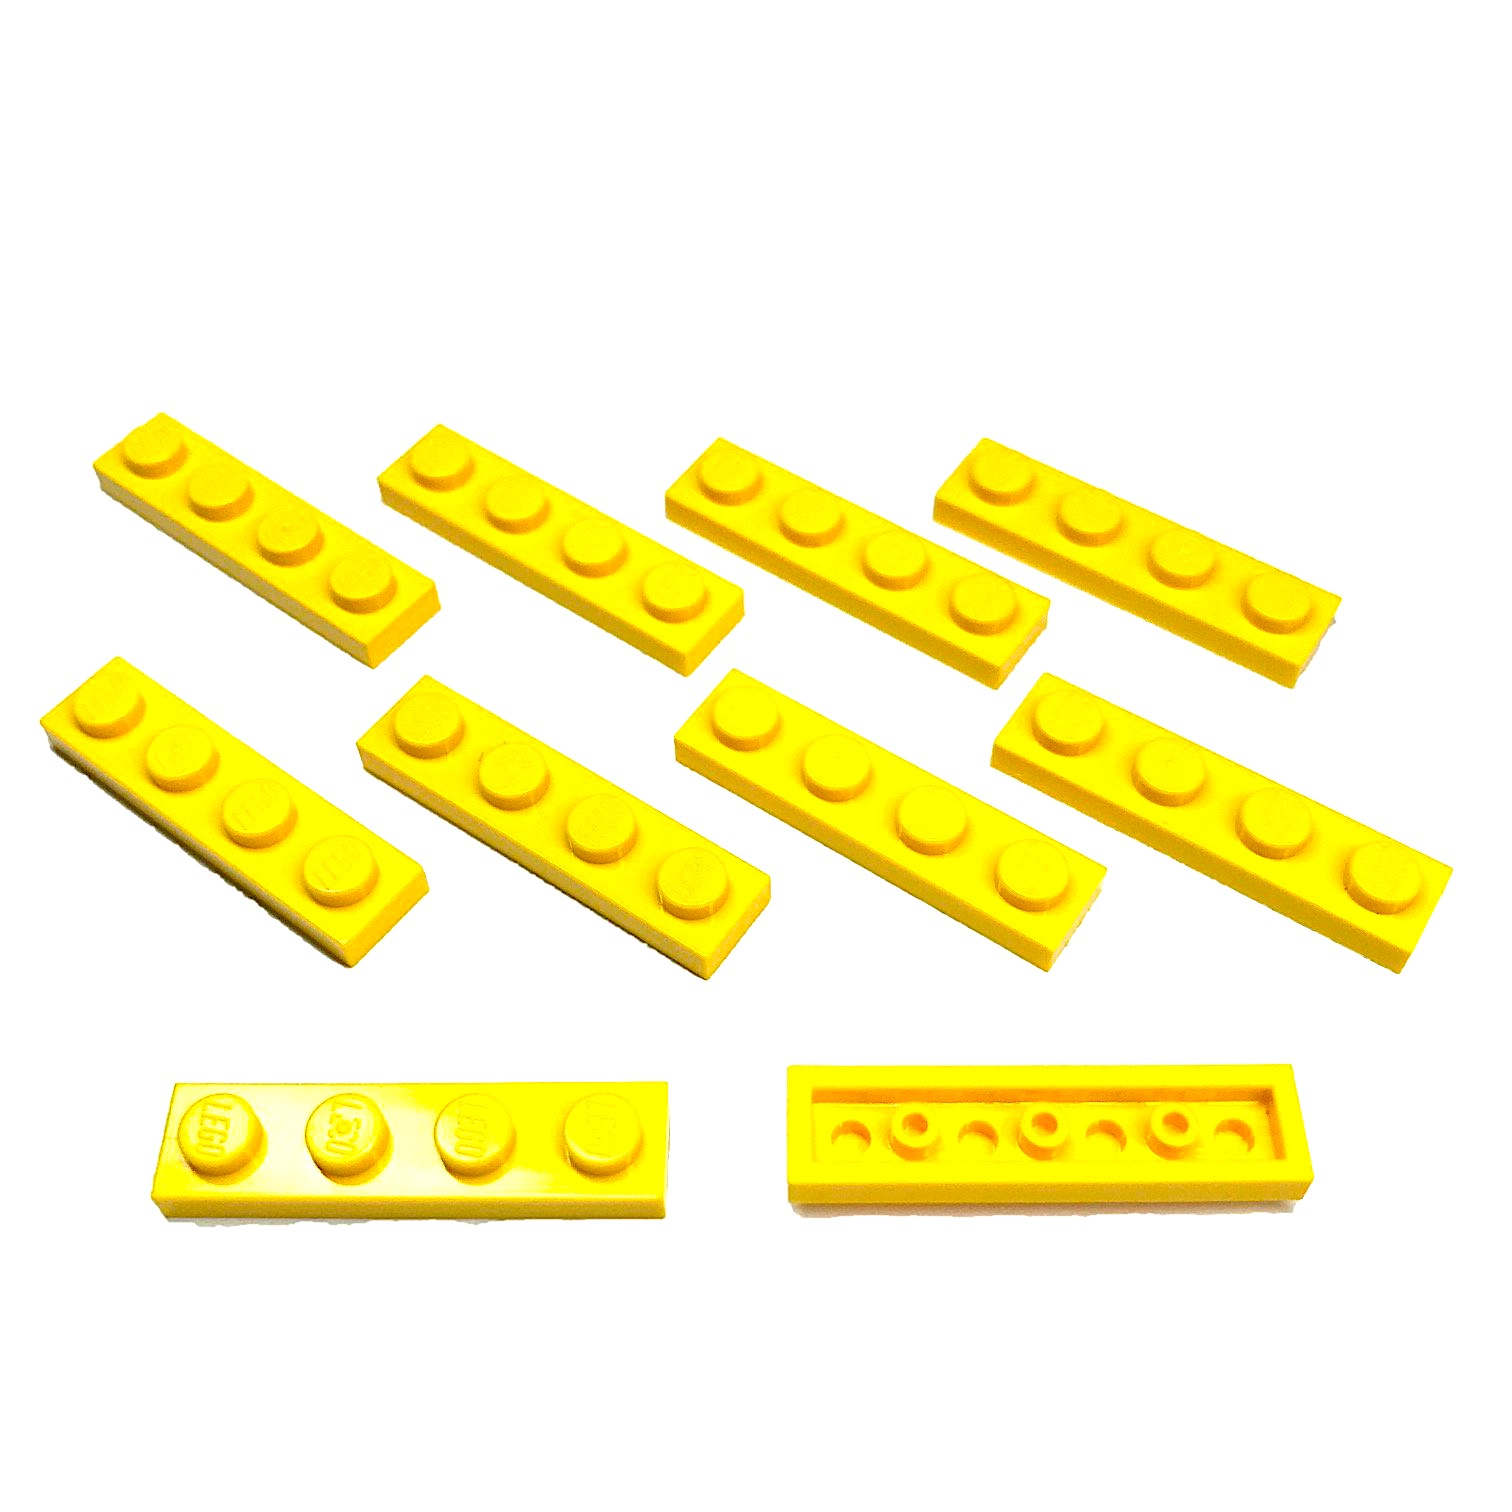 "Lego Parts: Plates ""1 x 4 Studs"" (Service Pack 3710 - 10 Yellow)"